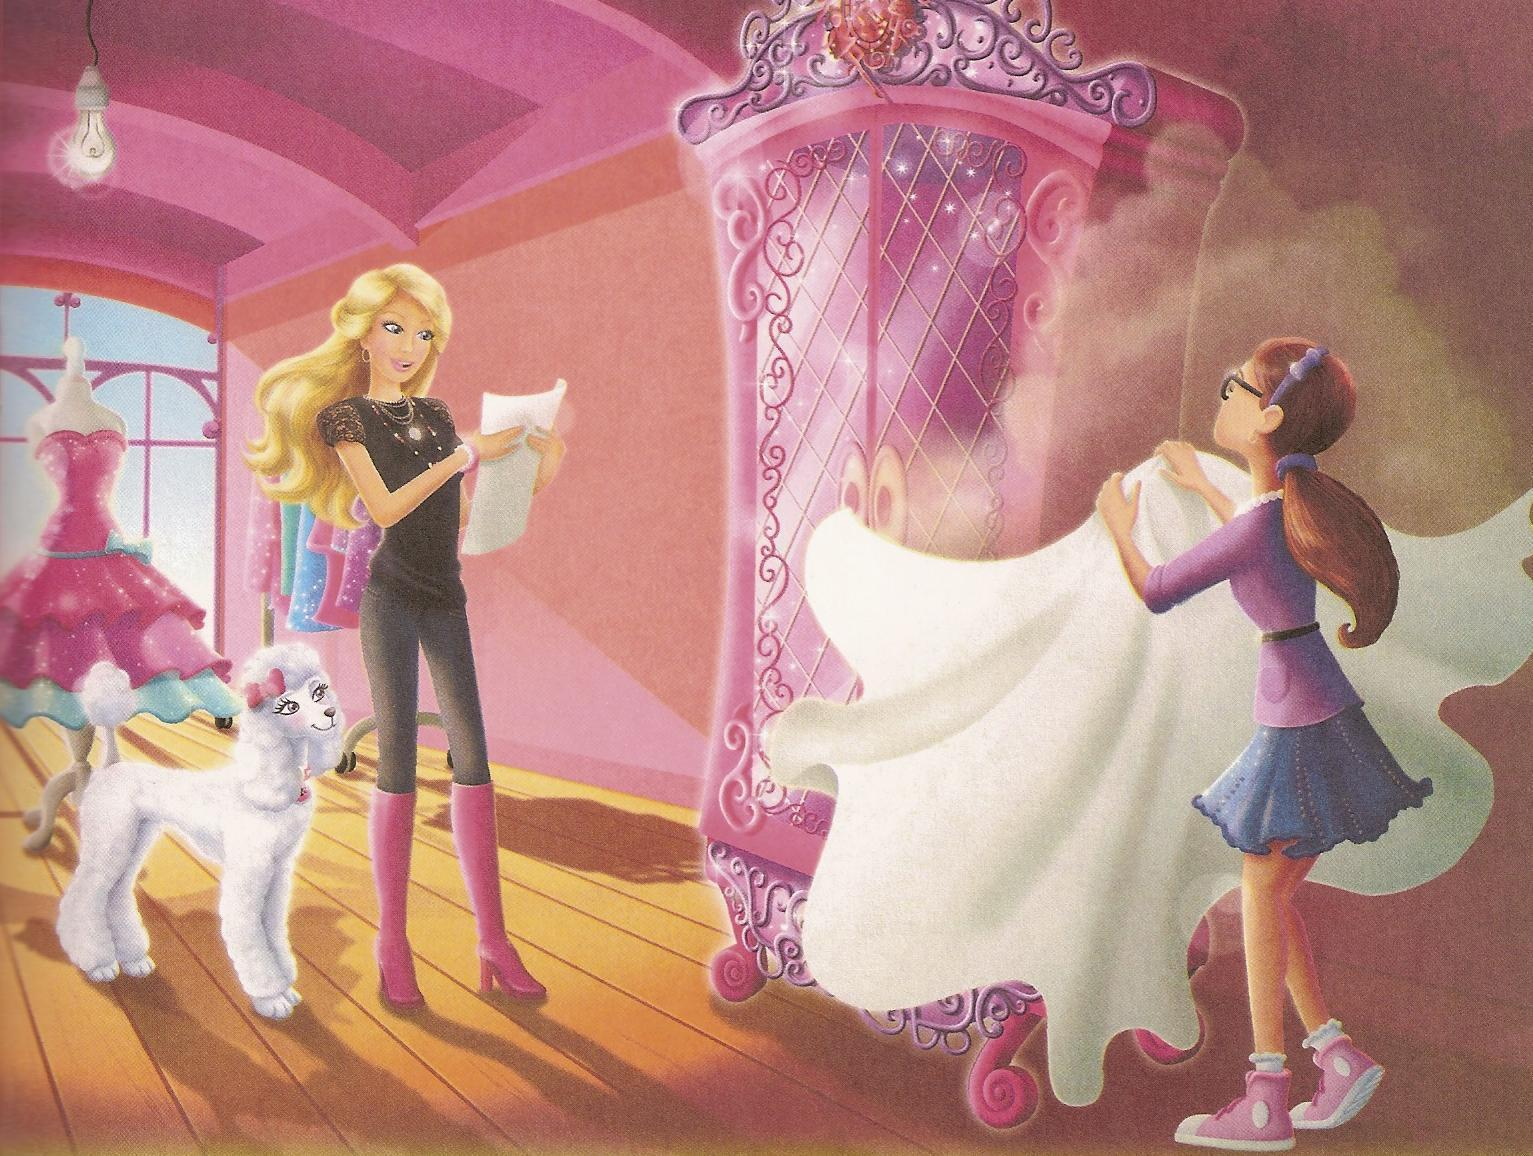 Full Movie Barbie A Fashion Fairytale Barbie a Fashion Fairy Tale